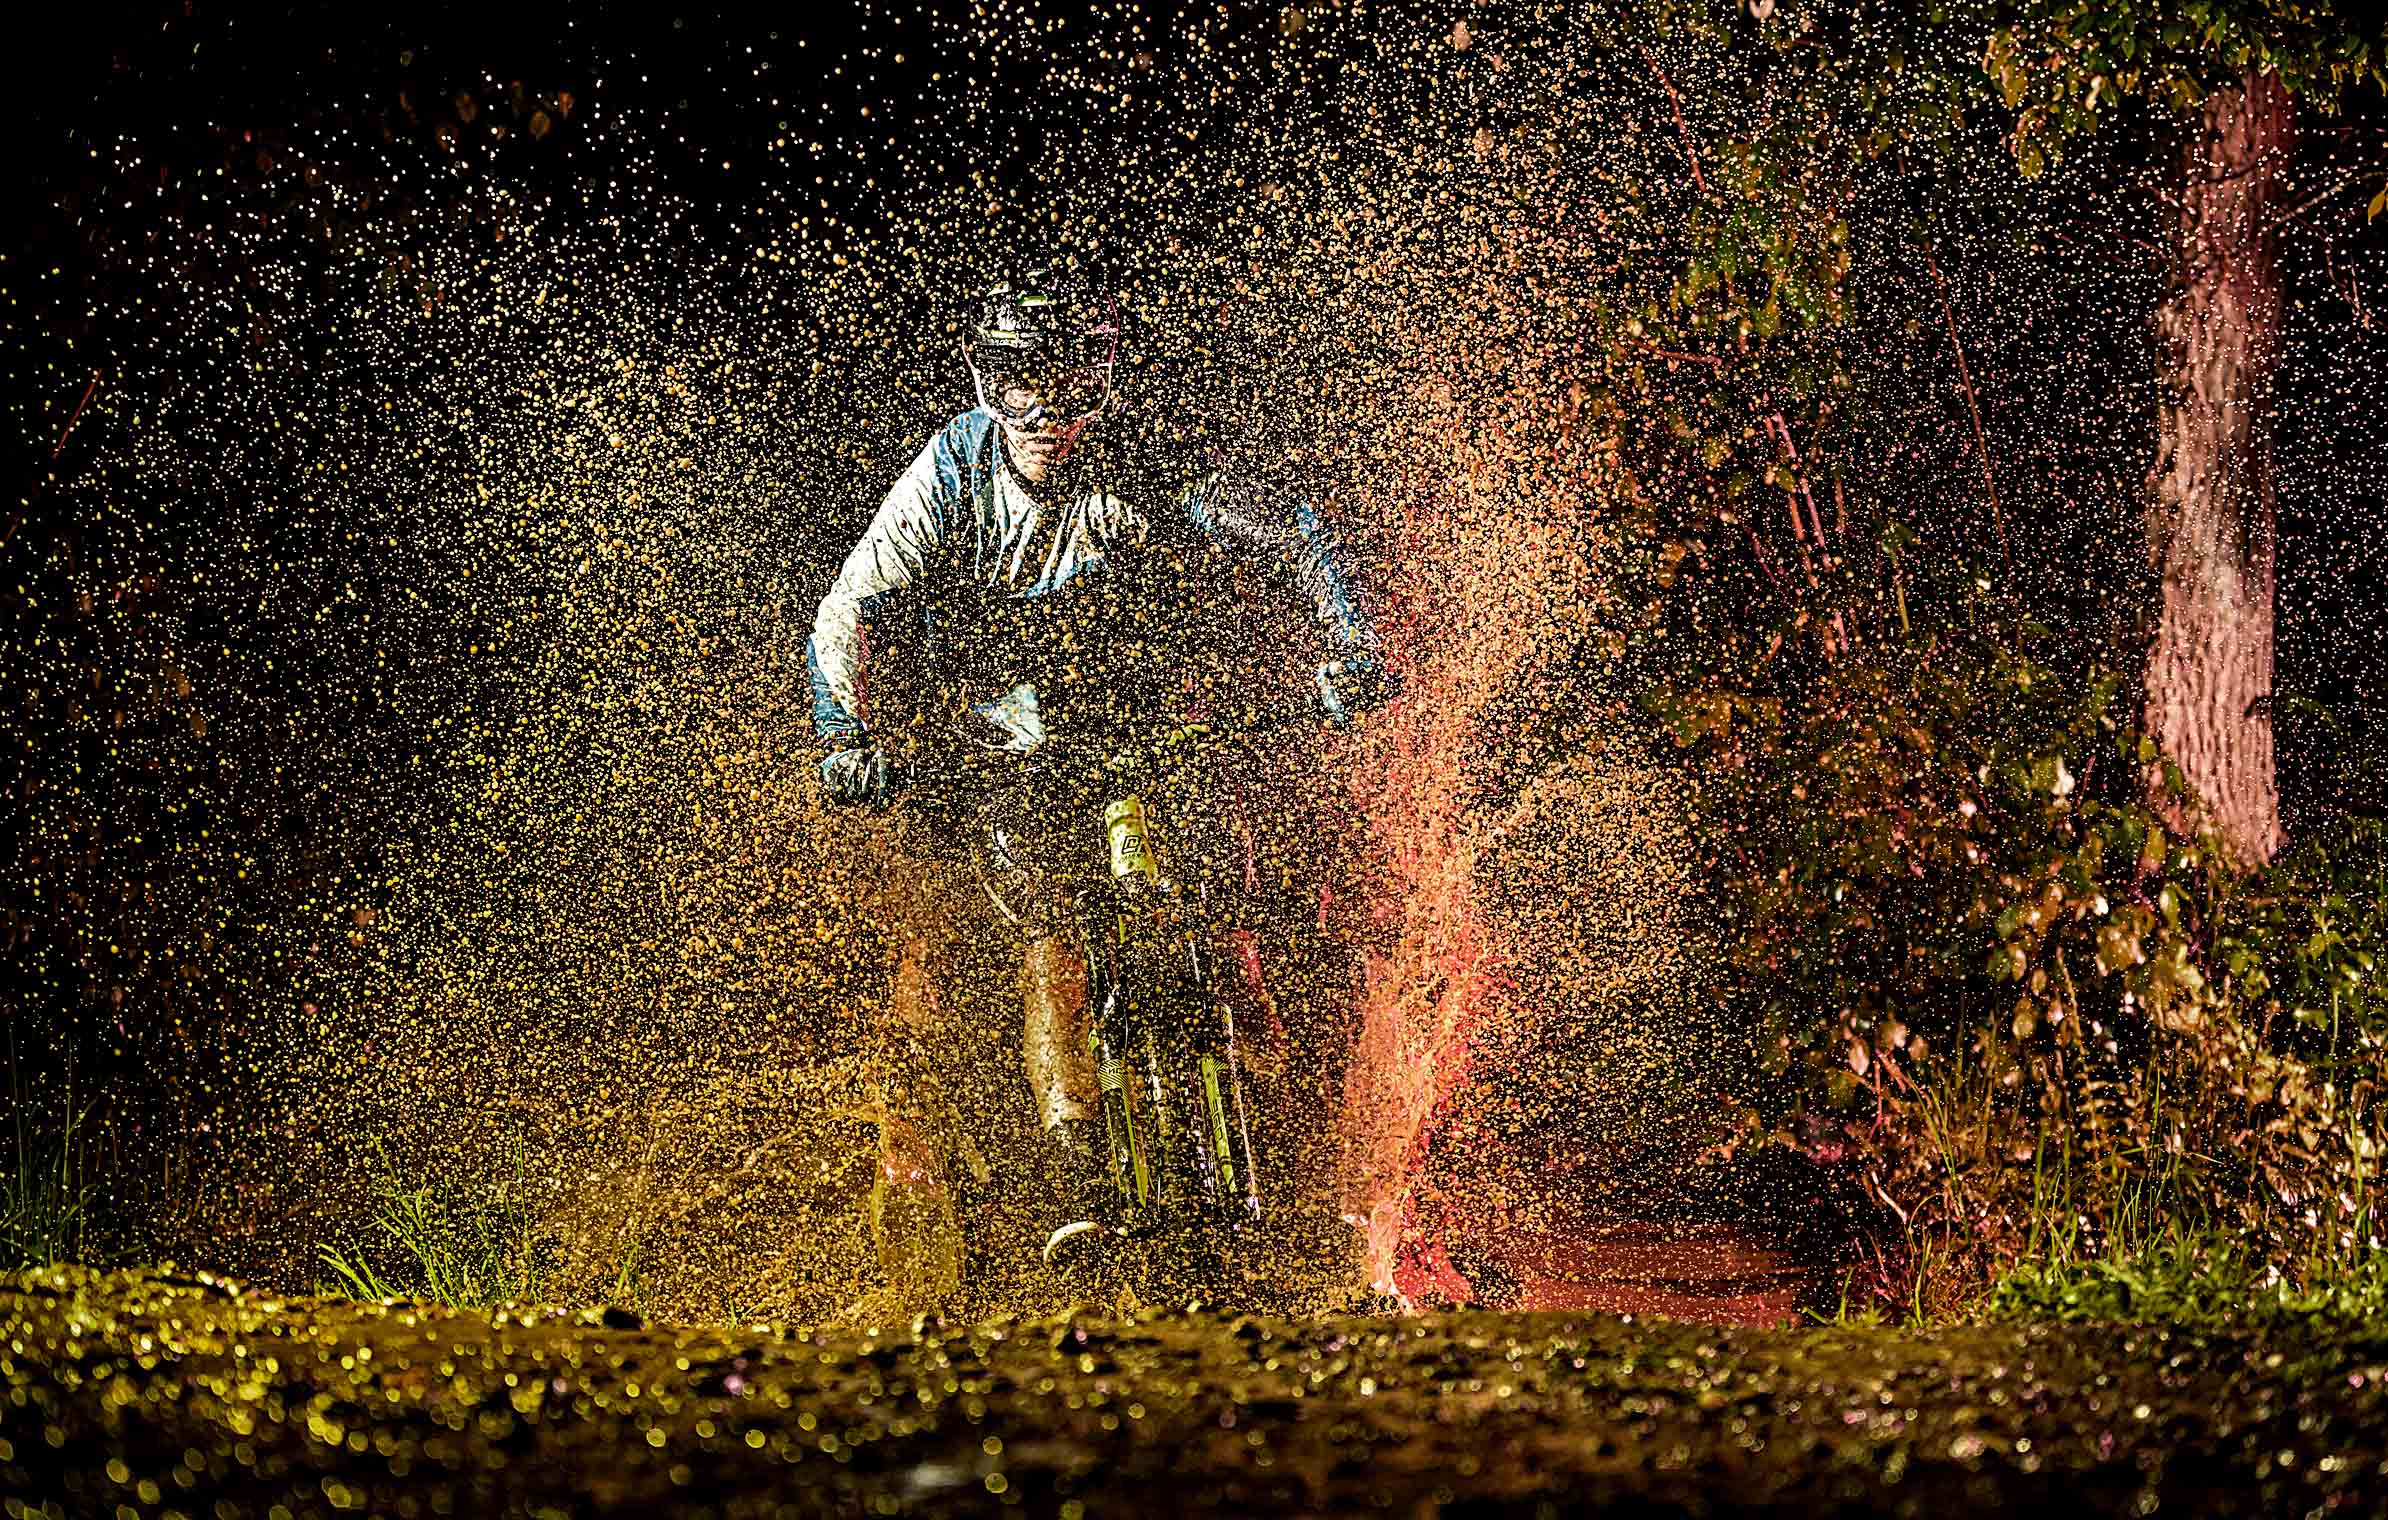 mtb_print_porn_dirt_colours_pascal_engel Kopie